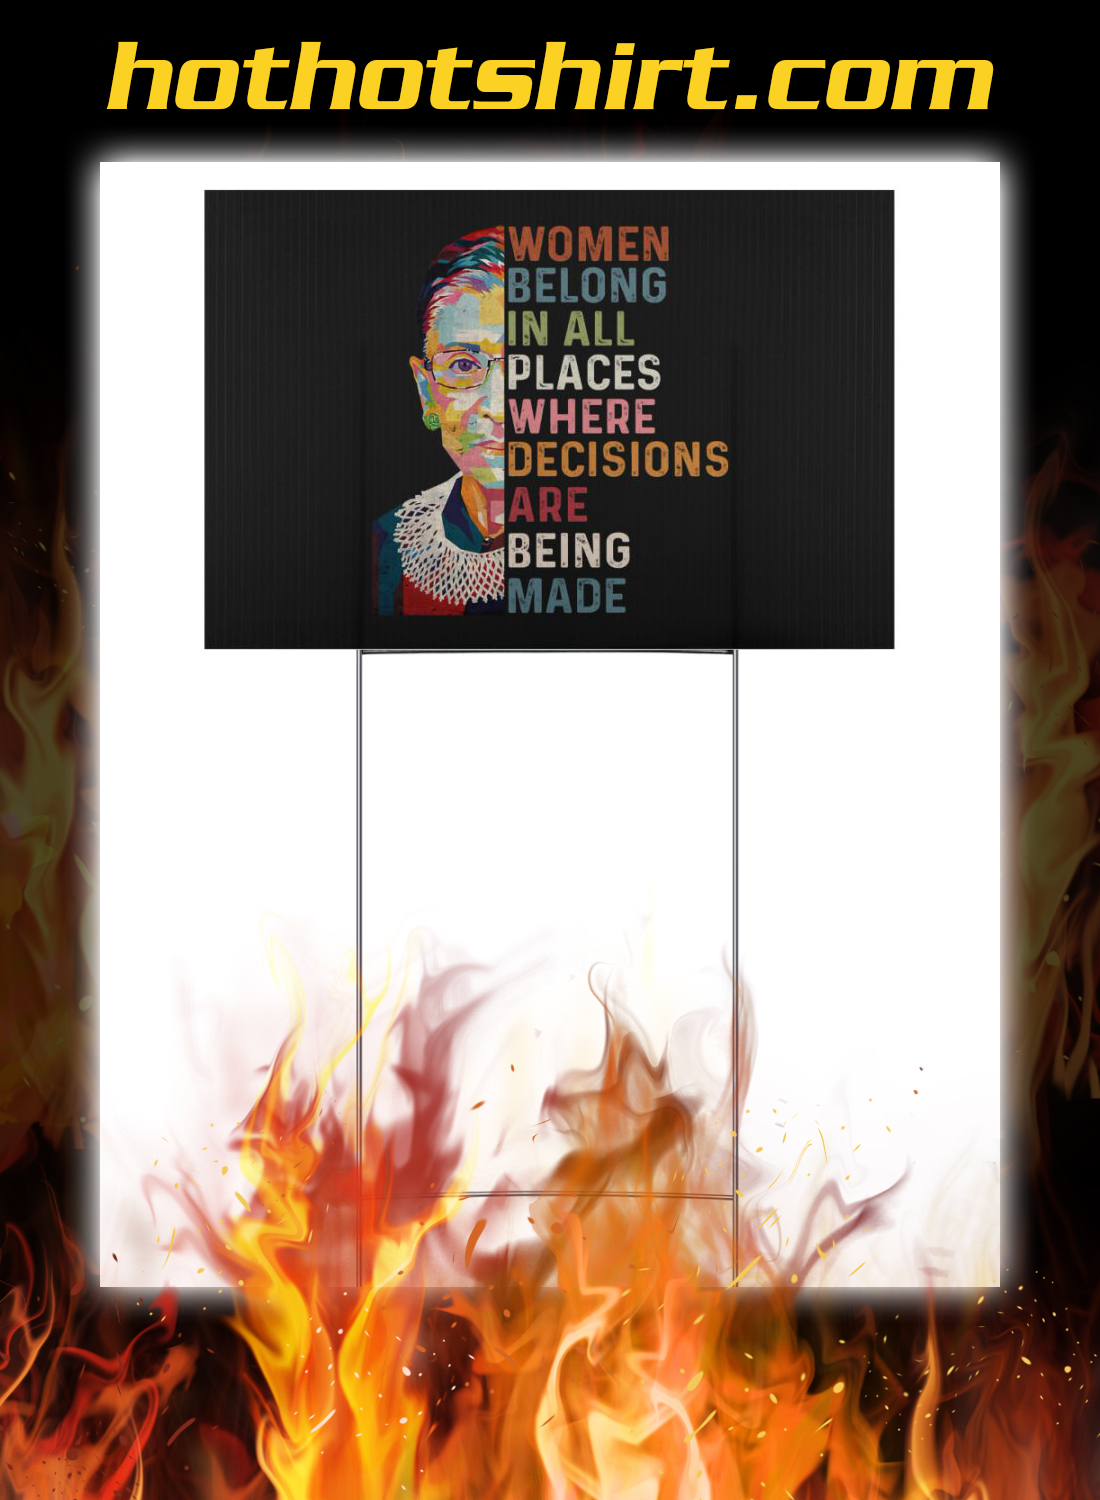 Ruth bader ginsburg women belong in all places where decisions are being made yard signs 1